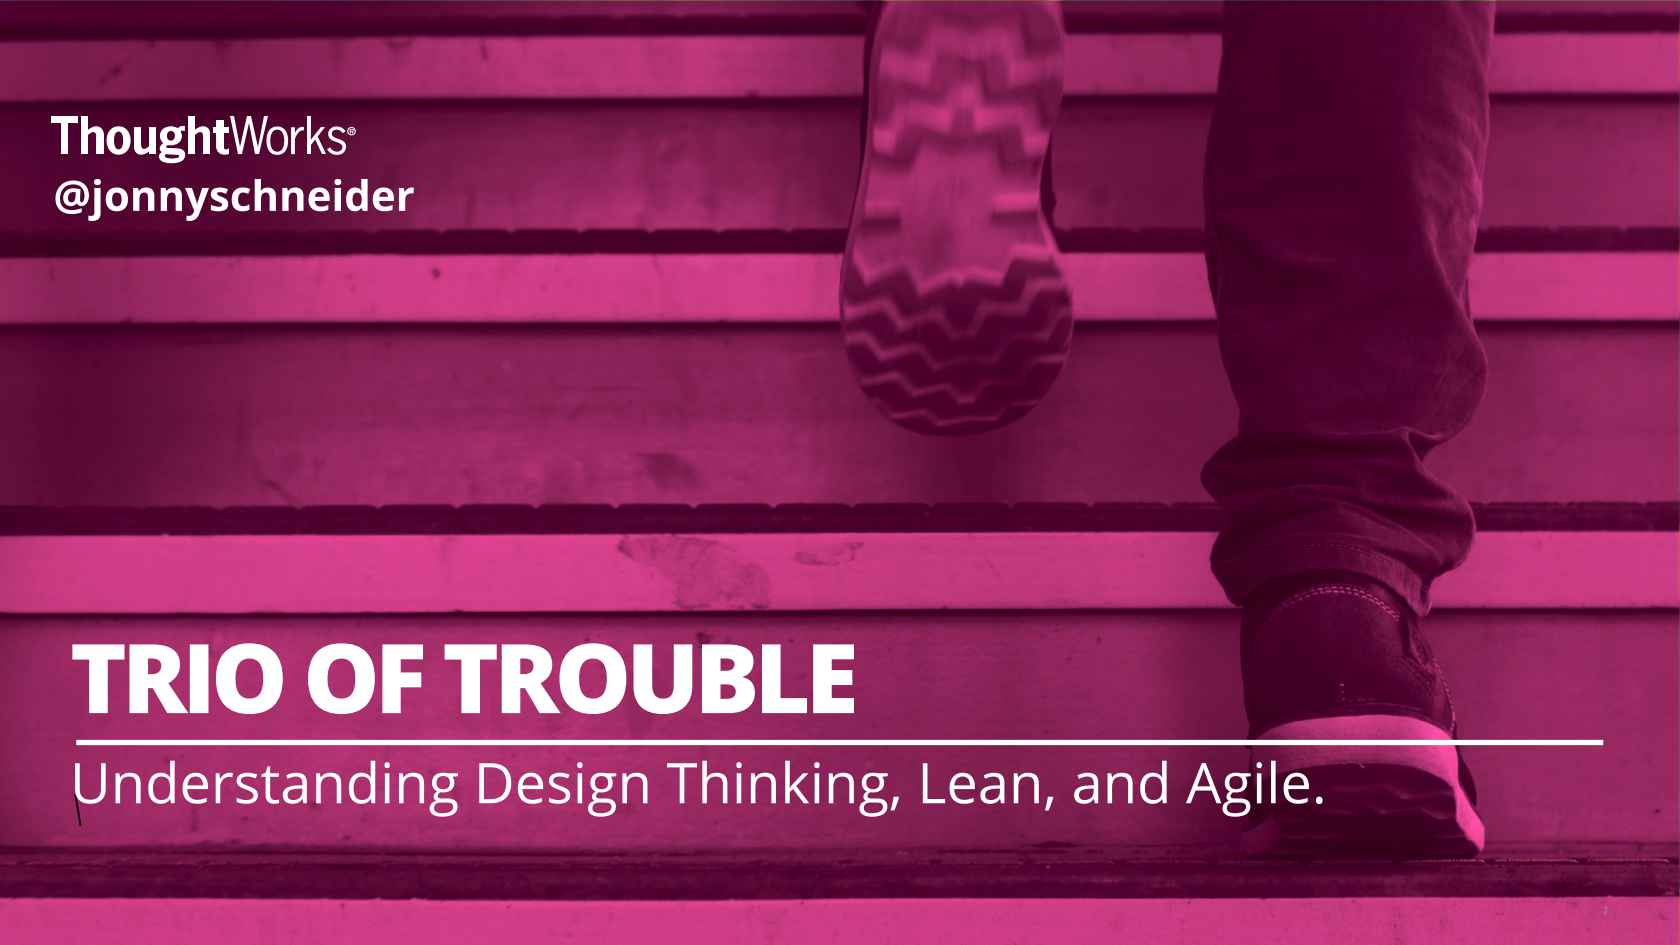 Schneider Barbados Test Trio Of Trouble Design Thinking Lean And Agile